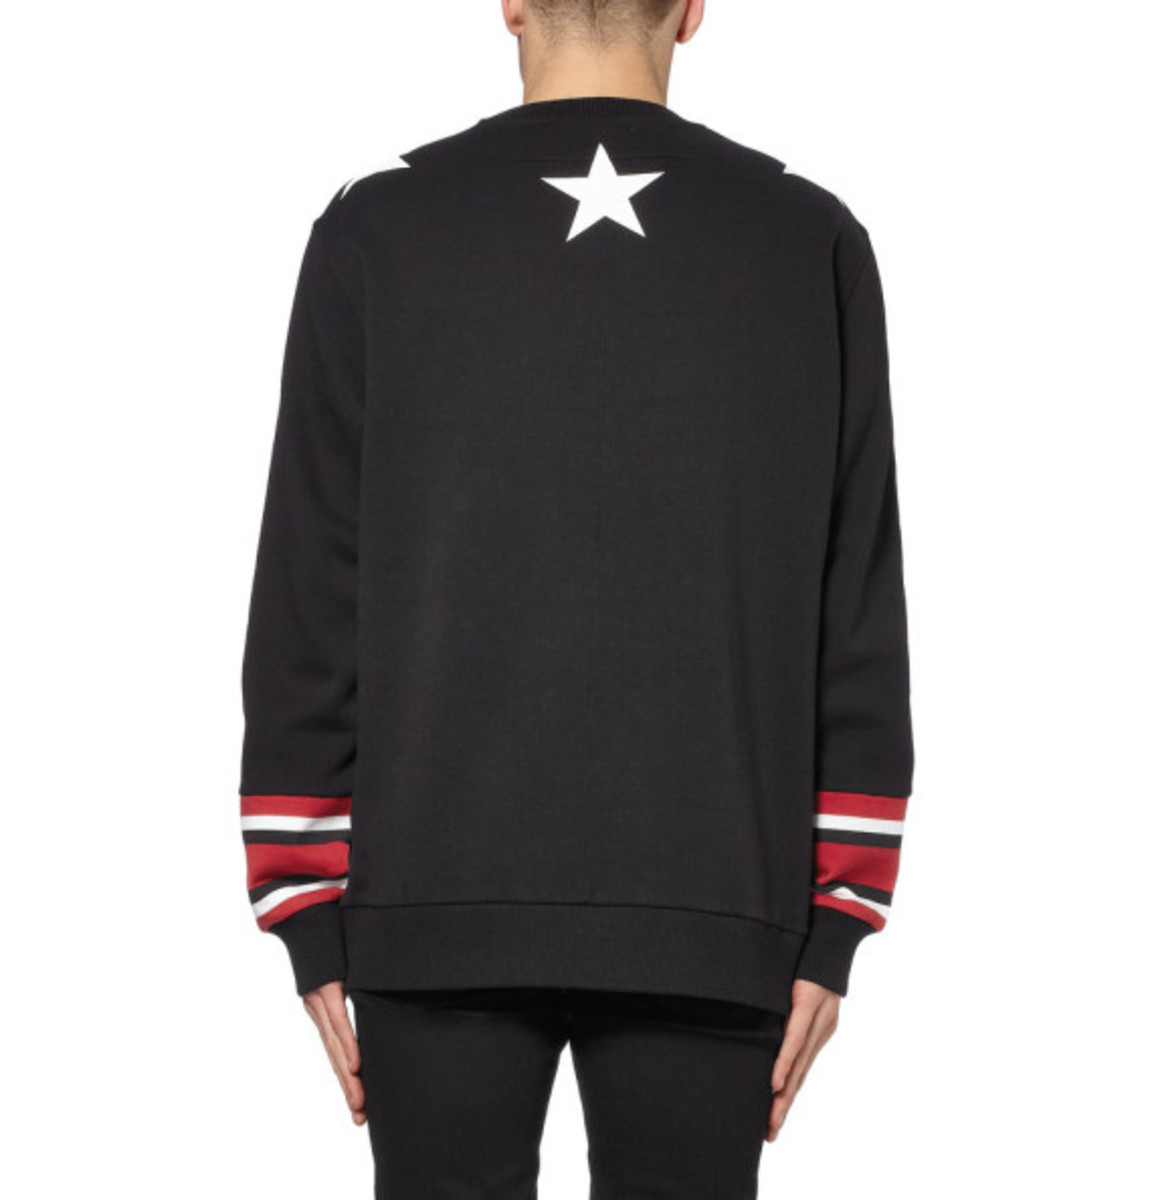 givenchy-star-printed-striped-cotton-sweatshirt-04